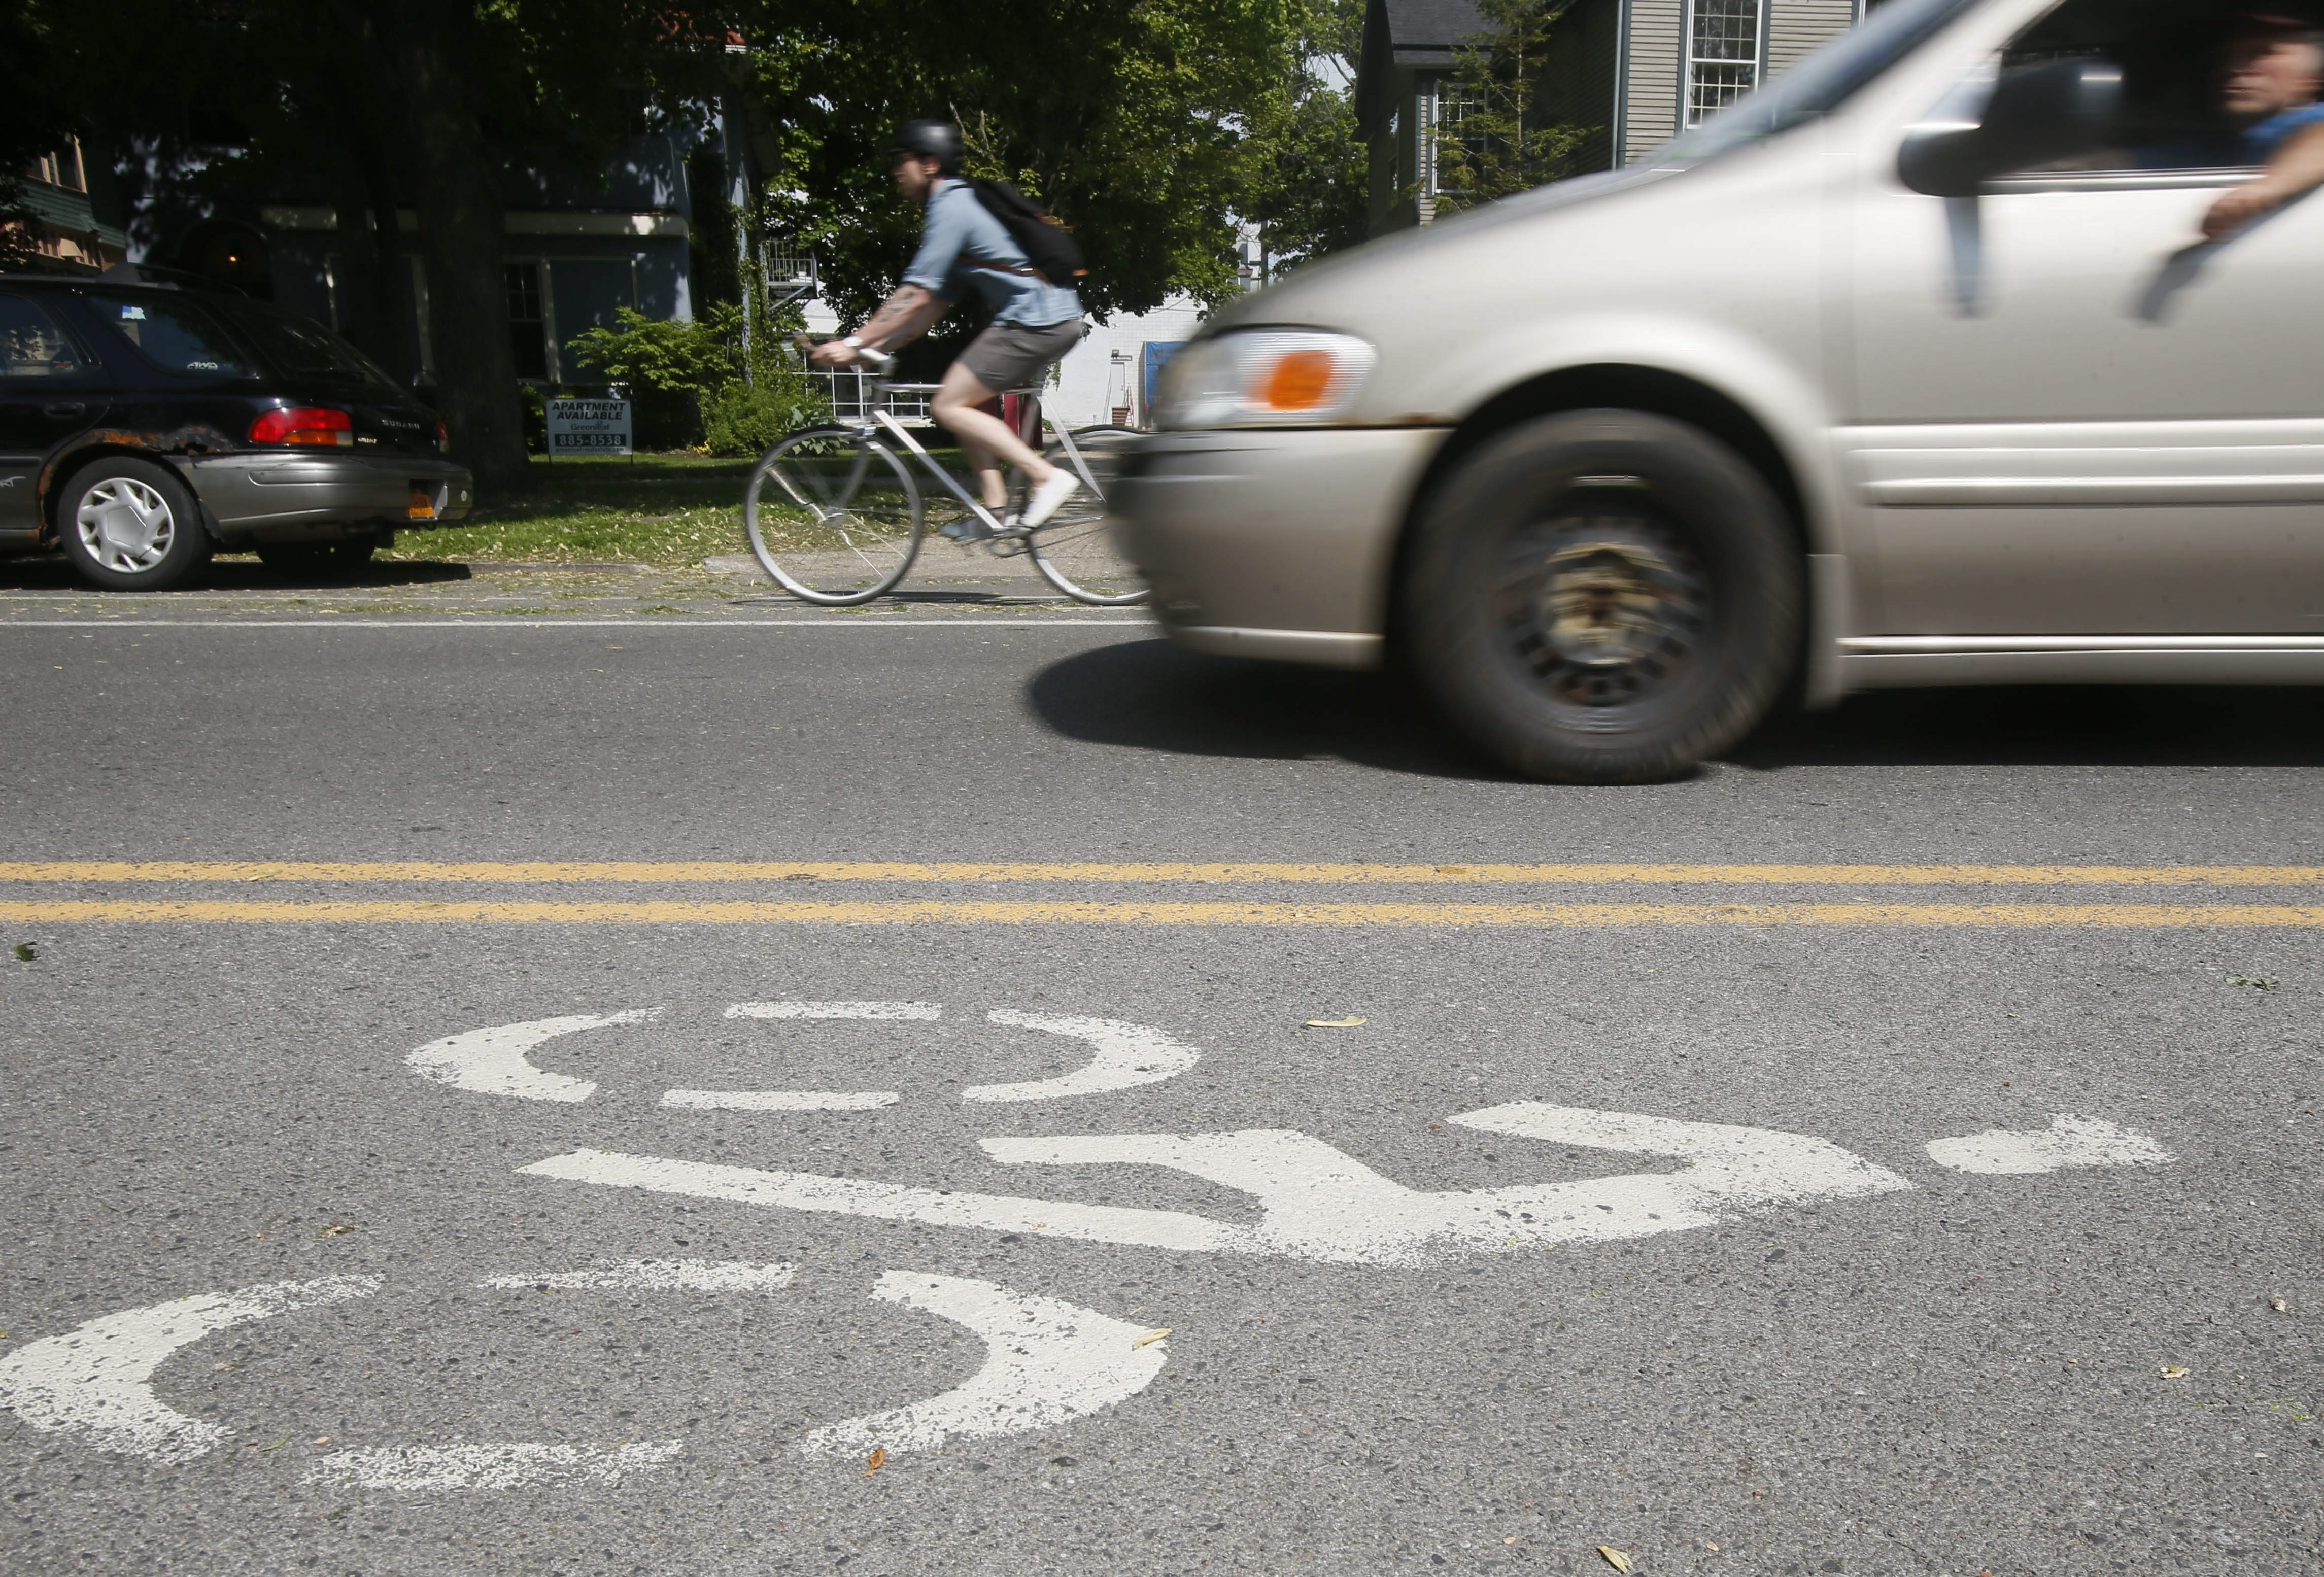 A cyclist rides in the bike lane on Linwood Avenue. (Derek Gee/News file photo)